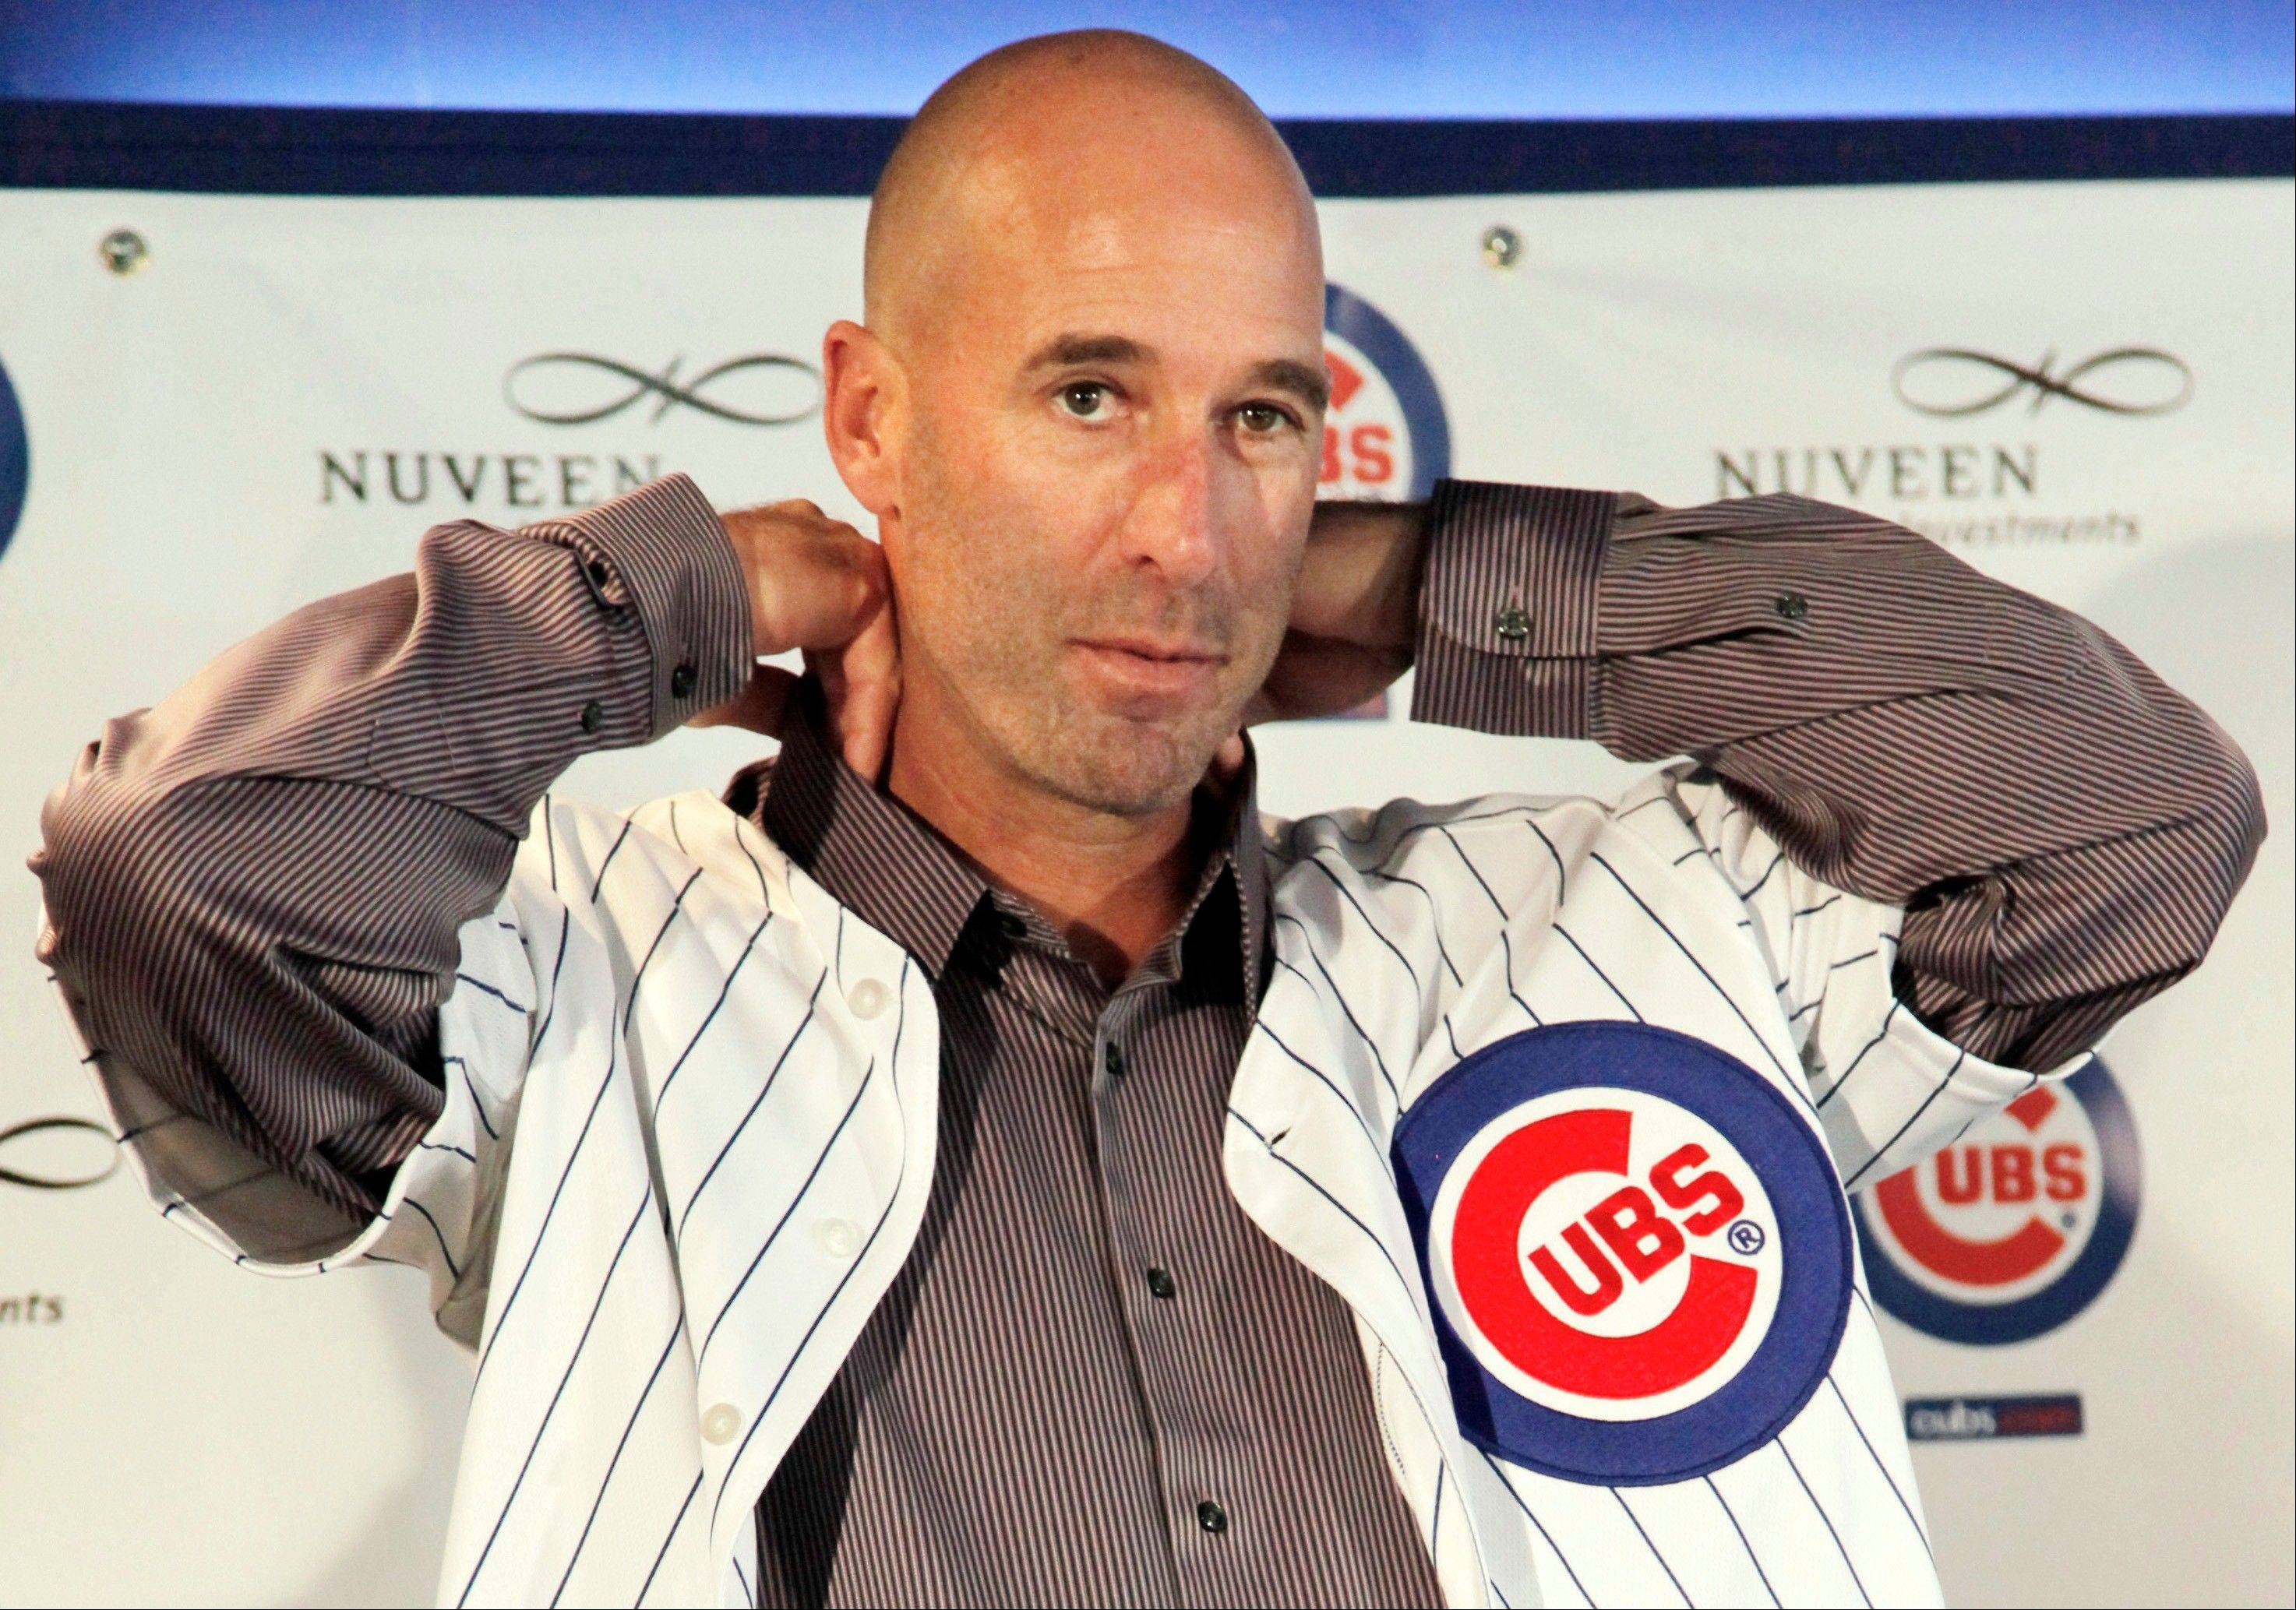 Dale Sveum dons a Chicago Cubs jersey after being introduced as the new manager of the baseball club during a news conference, Friday, Nov. 18, 2011, in Chicago.